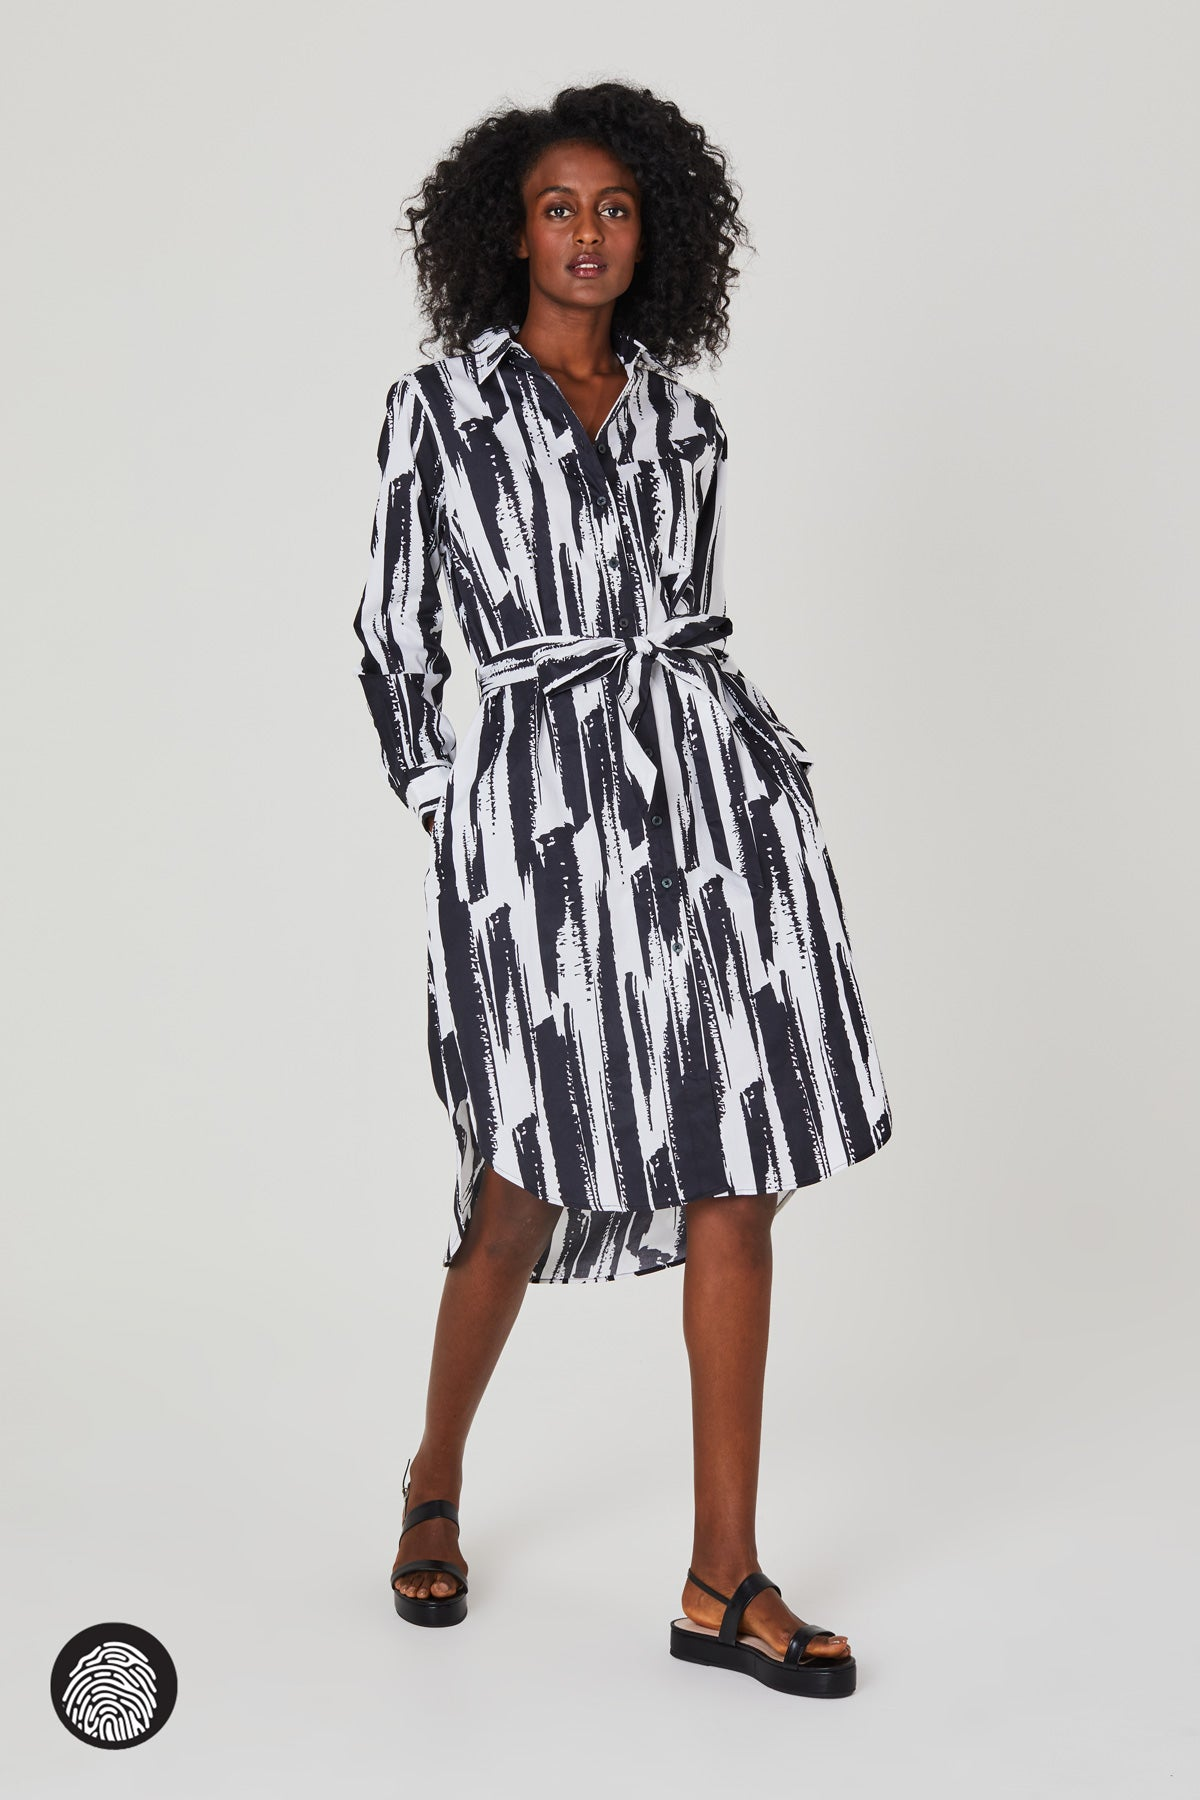 SHIRTDRESS / BRUSH STROKE BLACK | Megan Renee